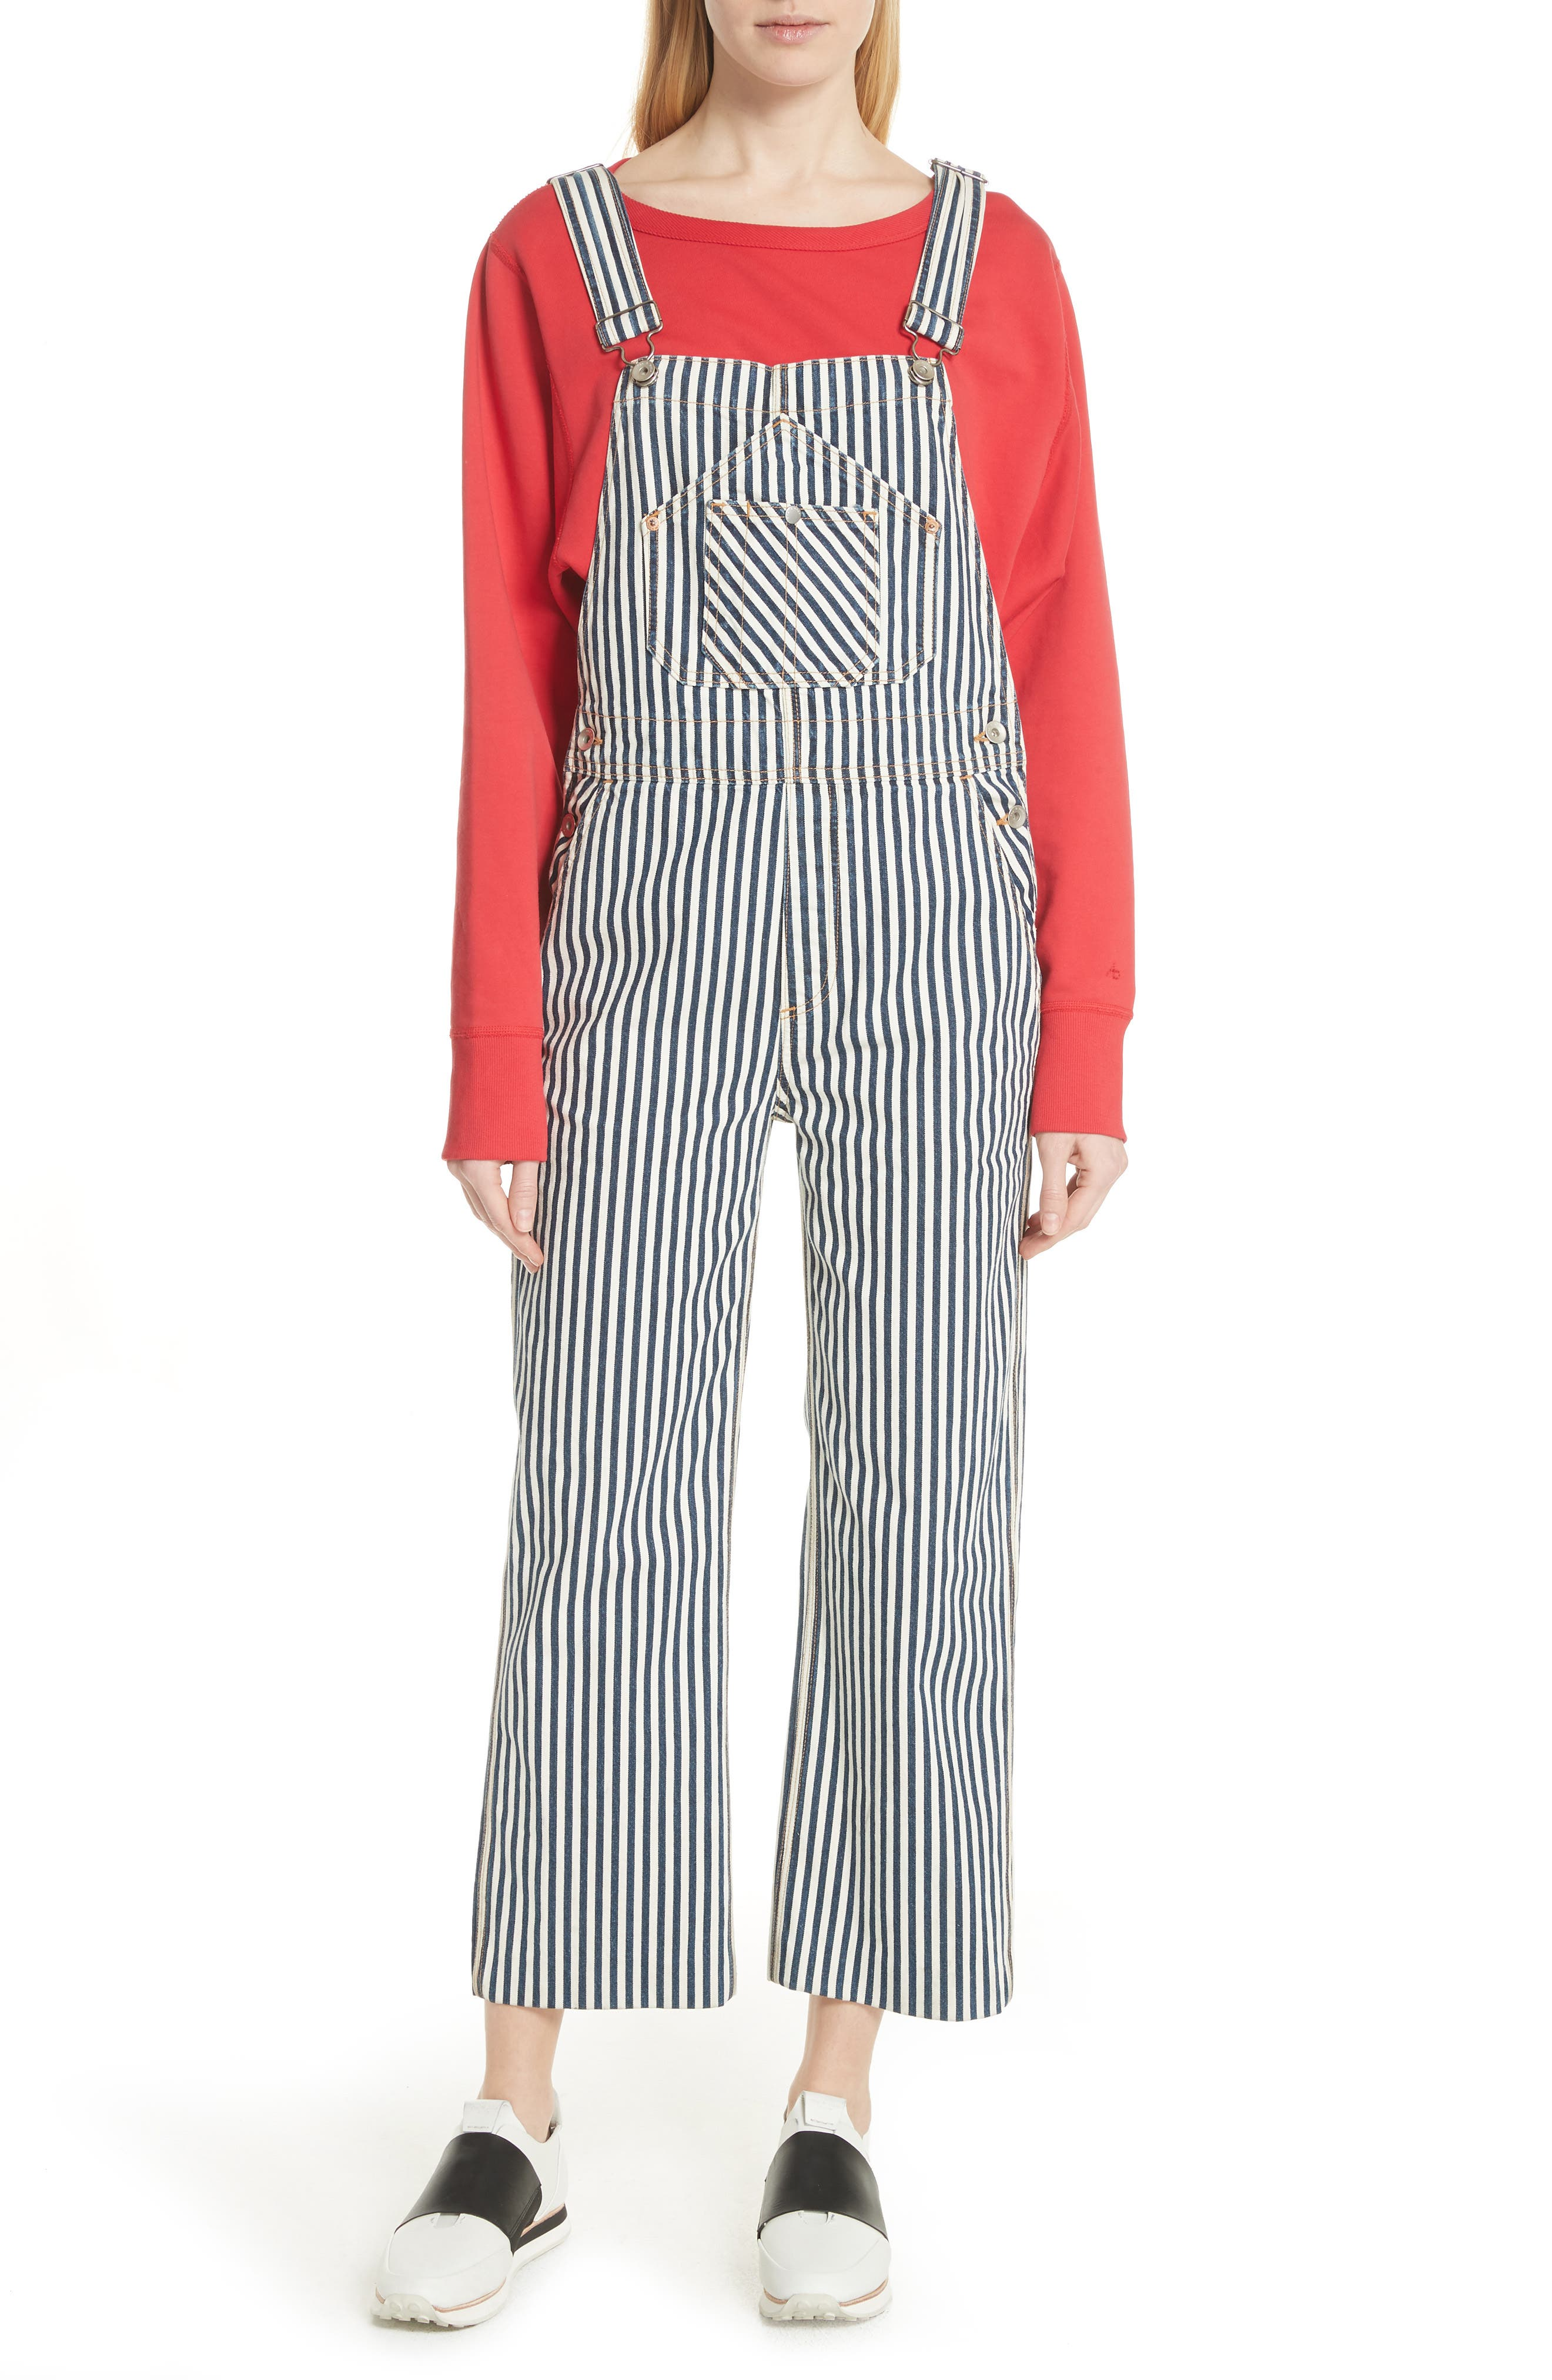 Patched Dungarees by Rag & Bone/Jean